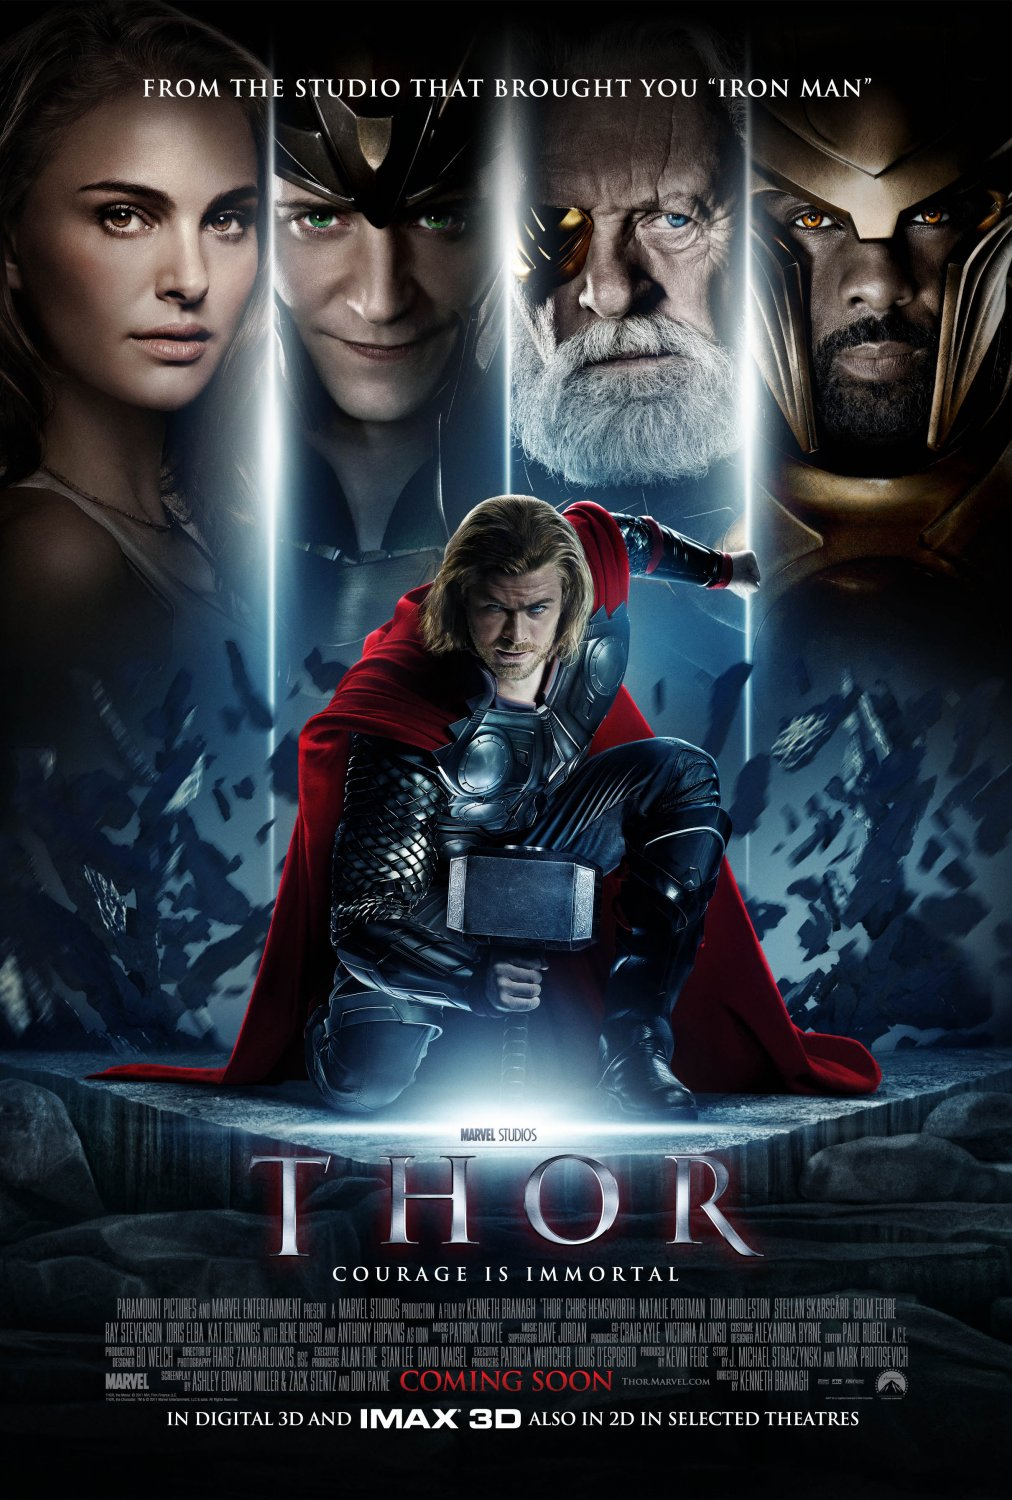 Thor (movie) | The Avengers Movie Wiki | FANDOM powered by ...